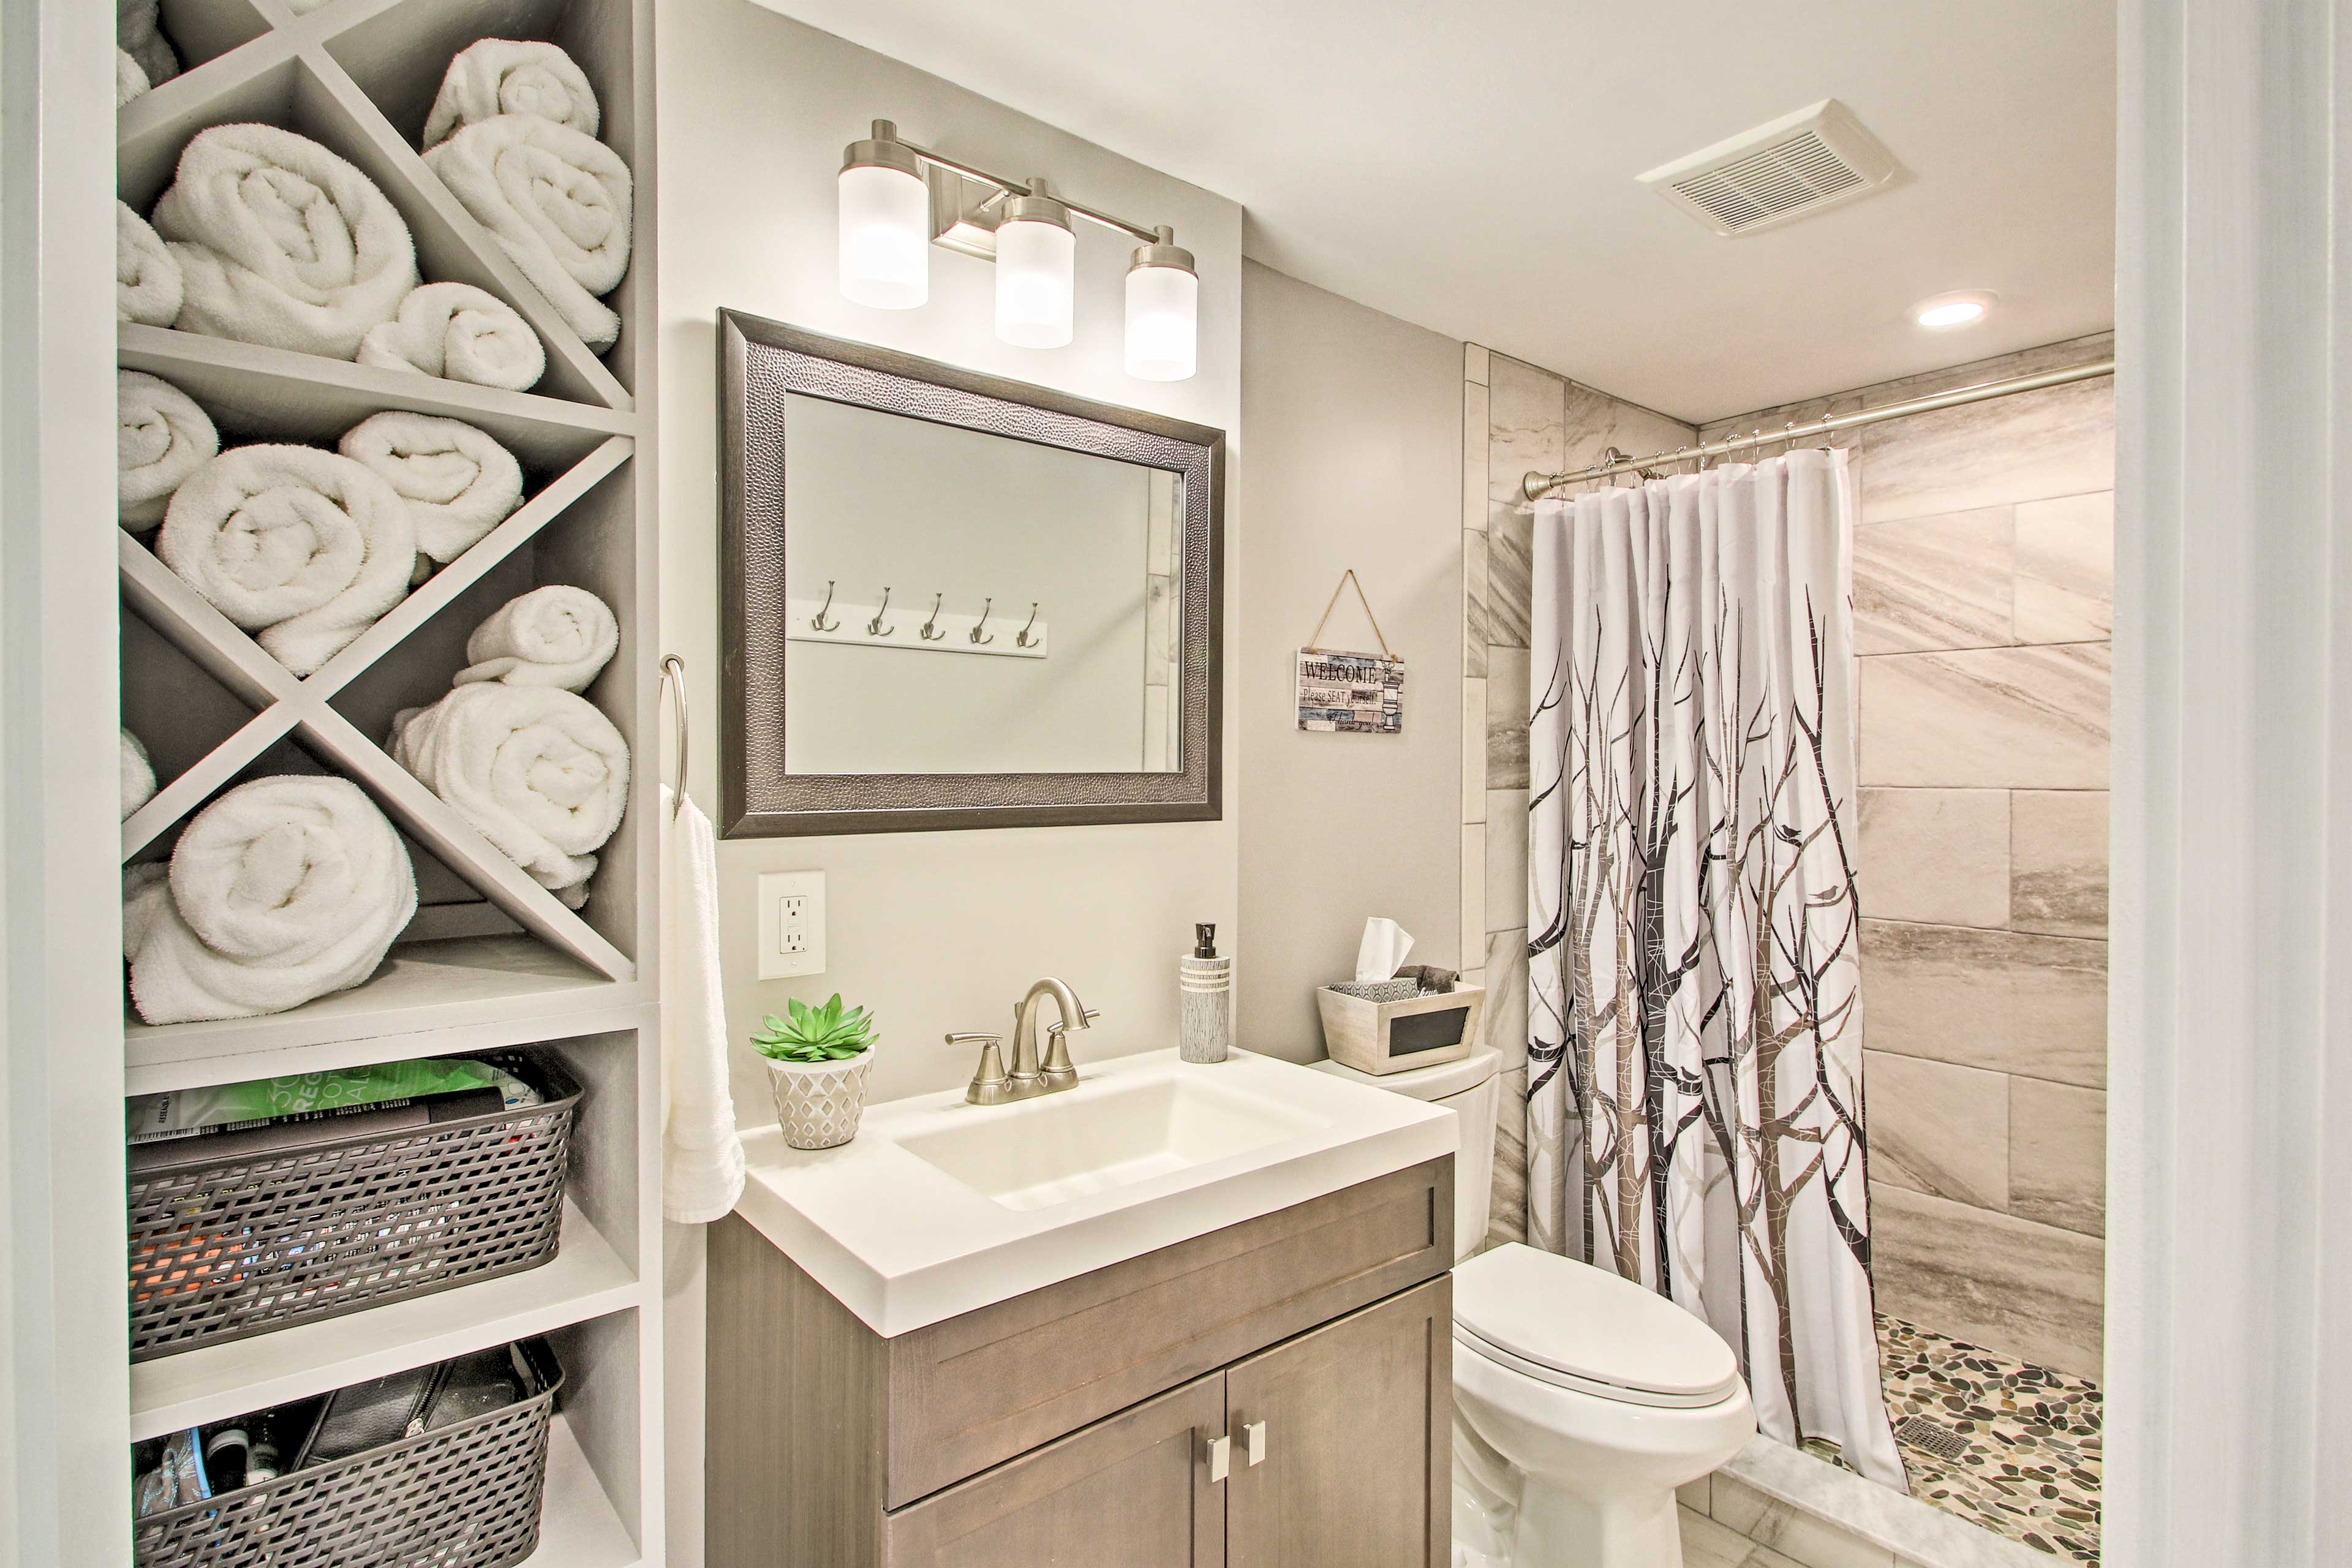 Ample fresh towels - plus complimentary toiletries - will be provided!